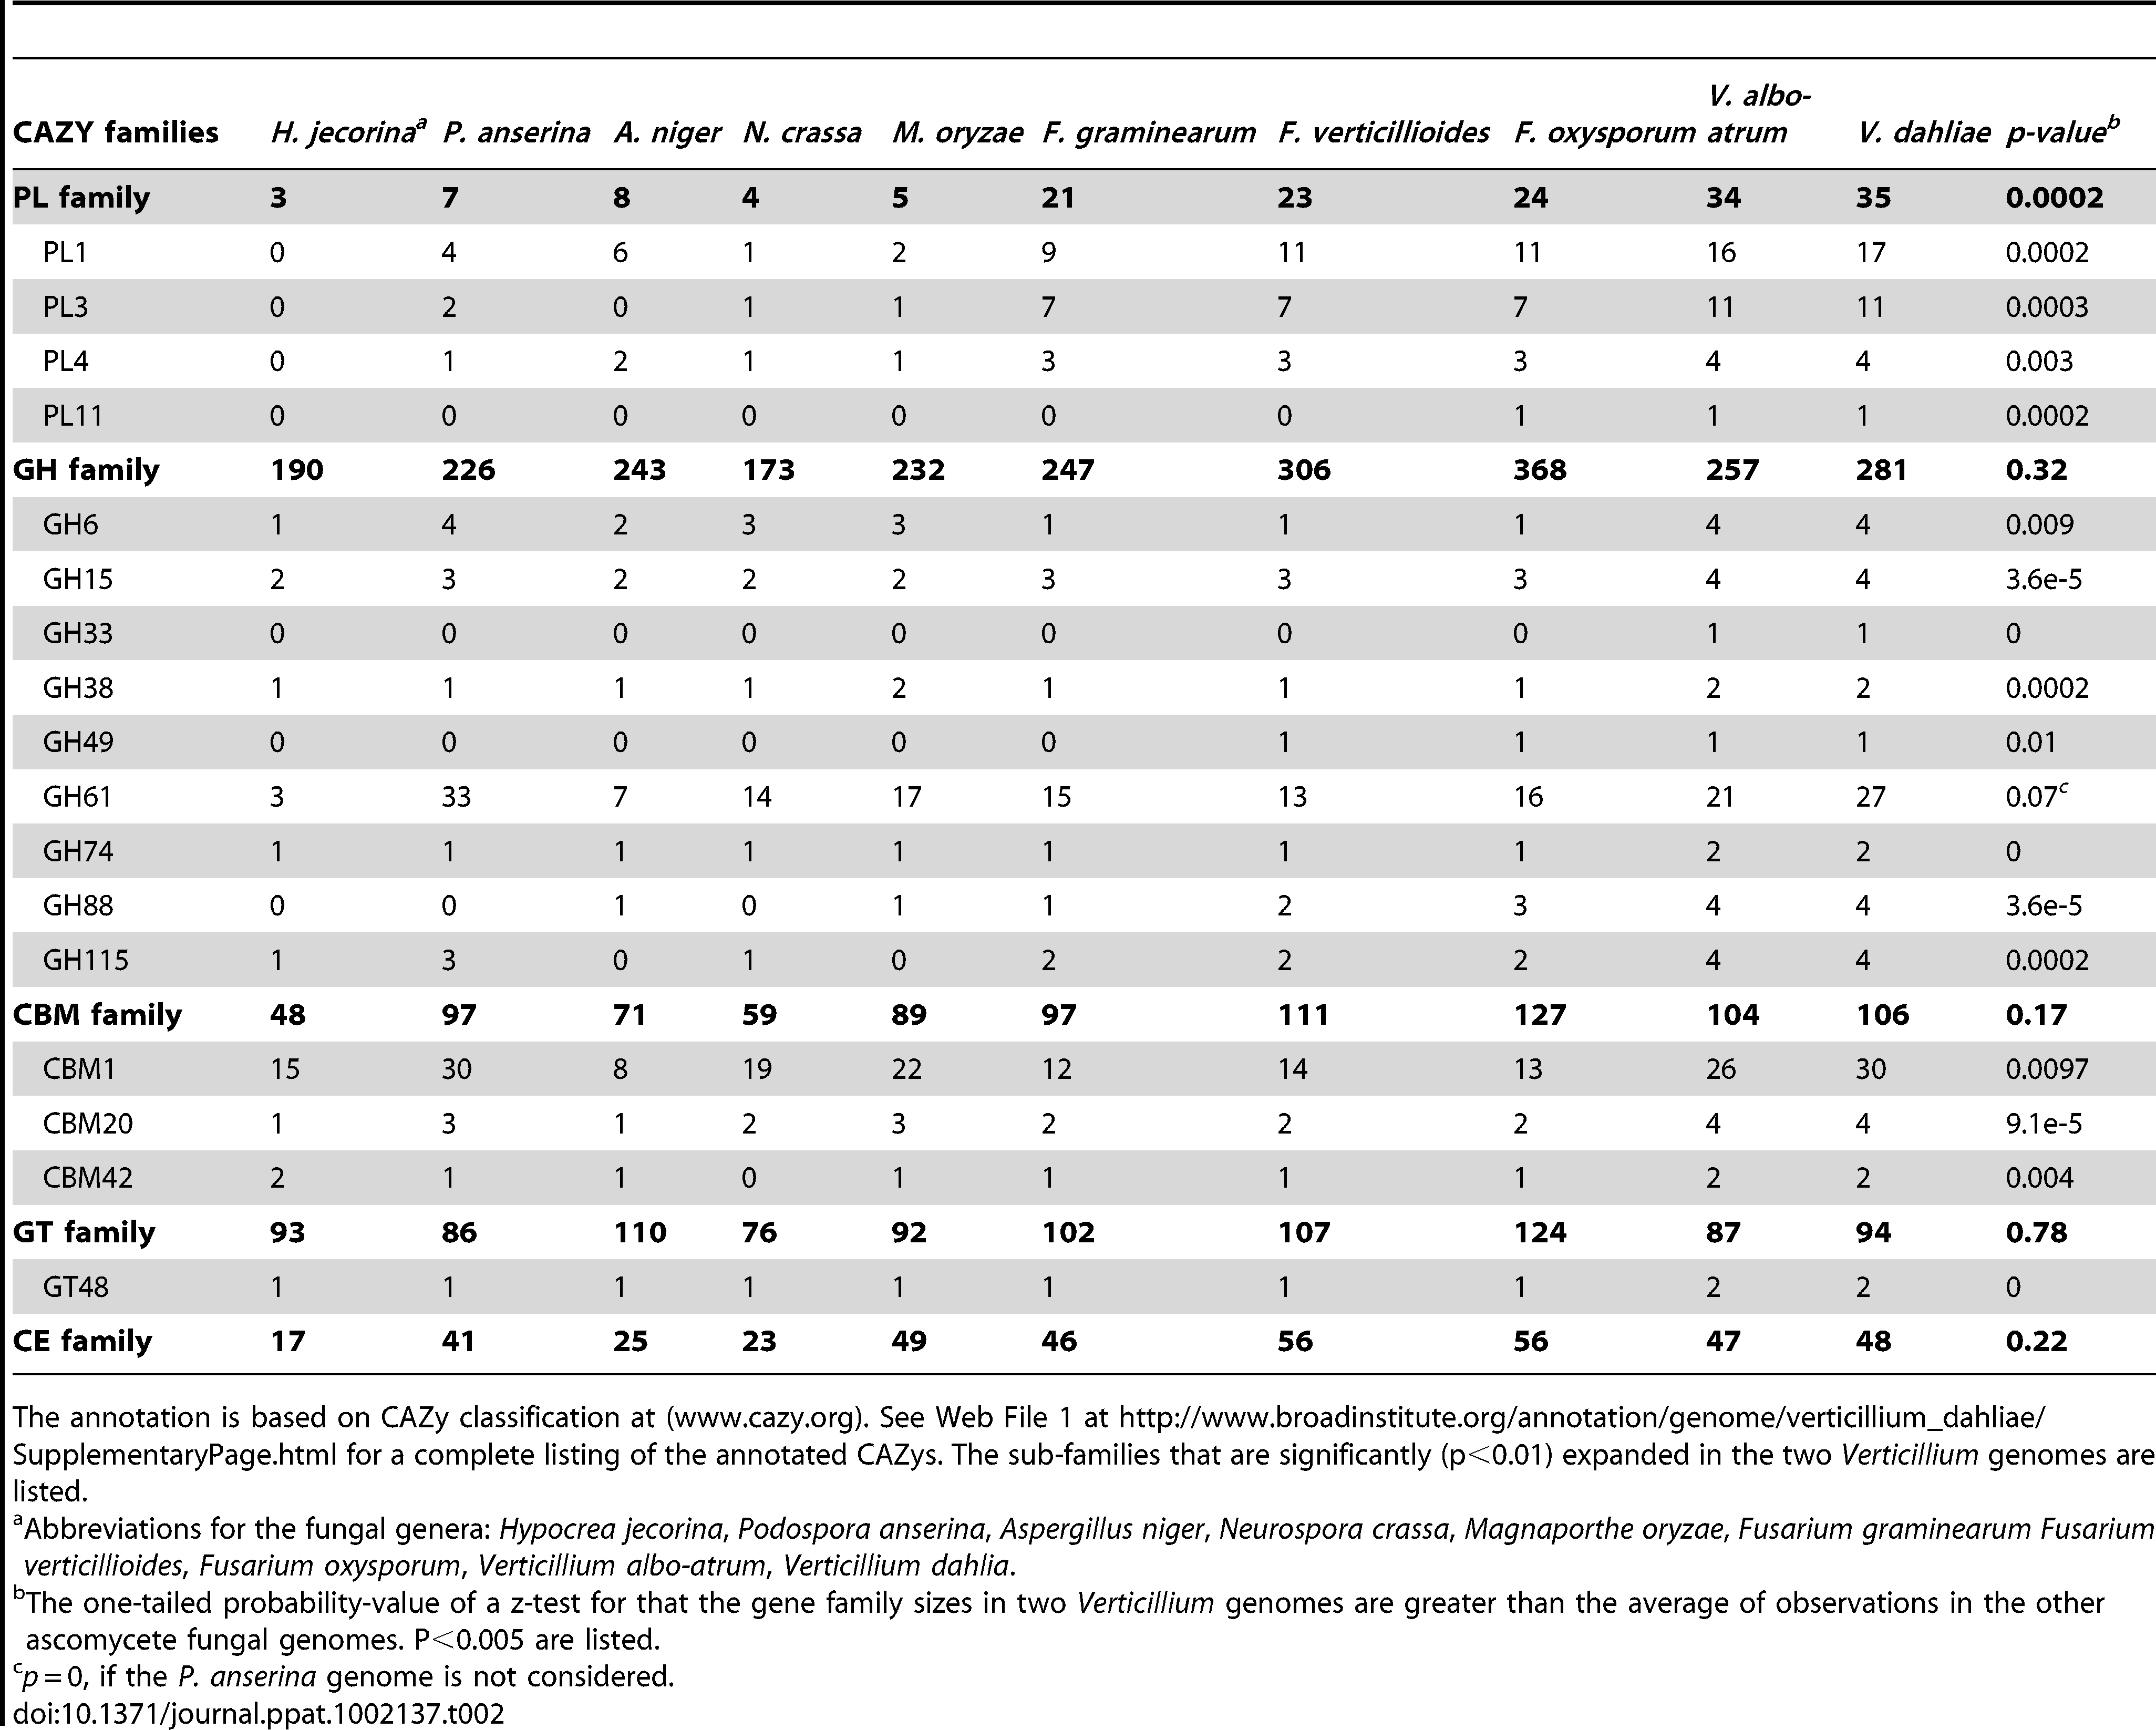 Carbohydrate-Active Enzymes of <i>Vd and Vaa</i> in comparison to other sequenced ascomycete fungal genomes.